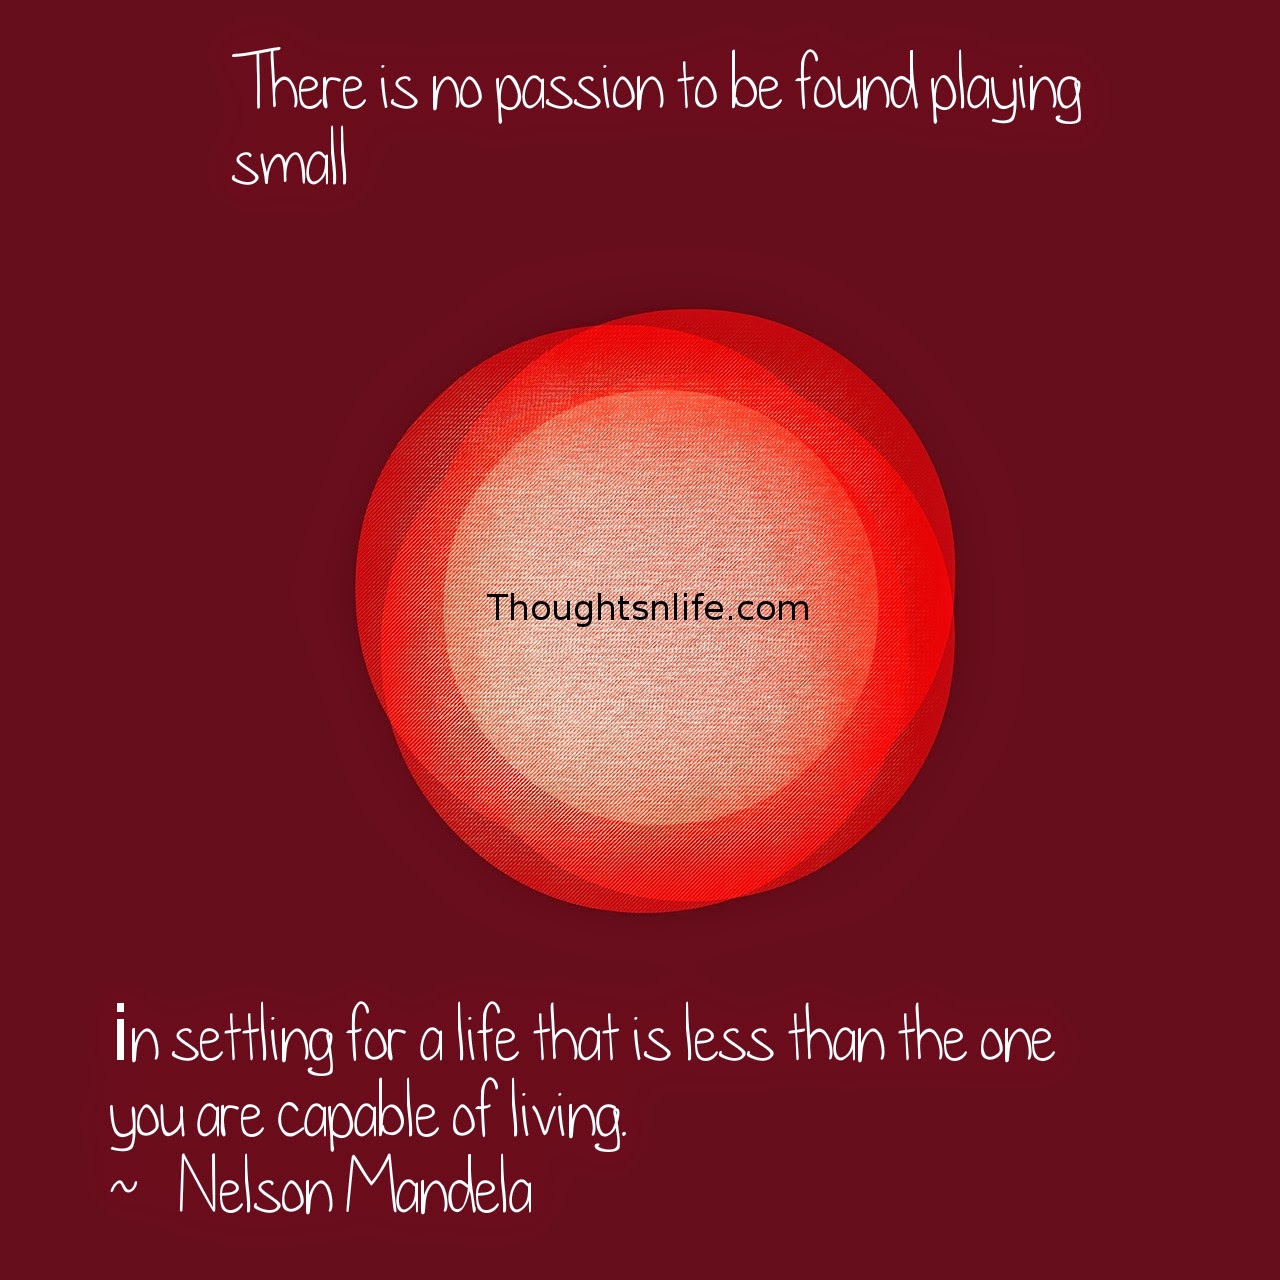 Thoughtsnlife.com: There is no passion to be found playing small - in settling for a life that is less than the one you are capable of living.  ~   Nelson Mandela